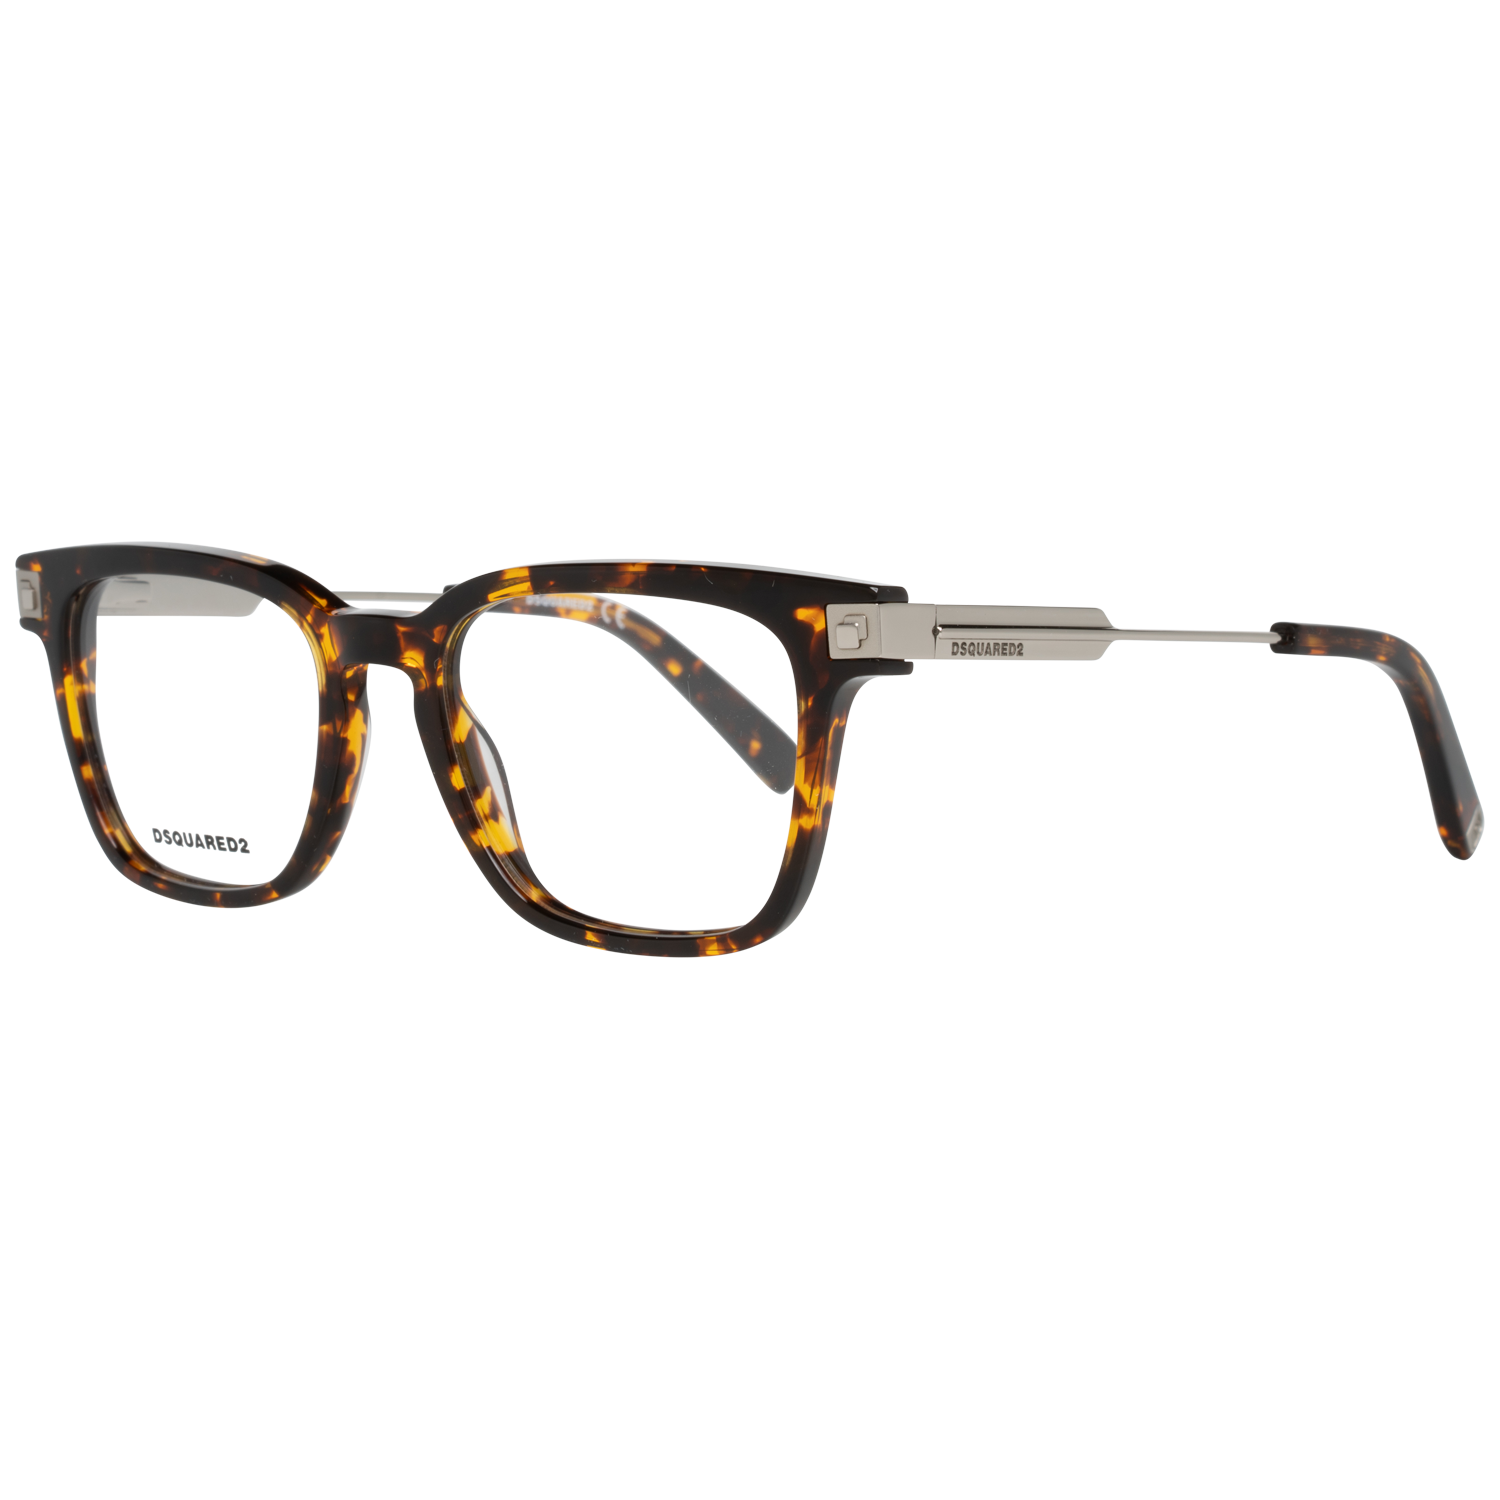 Dsquared2 Optical Frame DQ5244 053 49 Brown